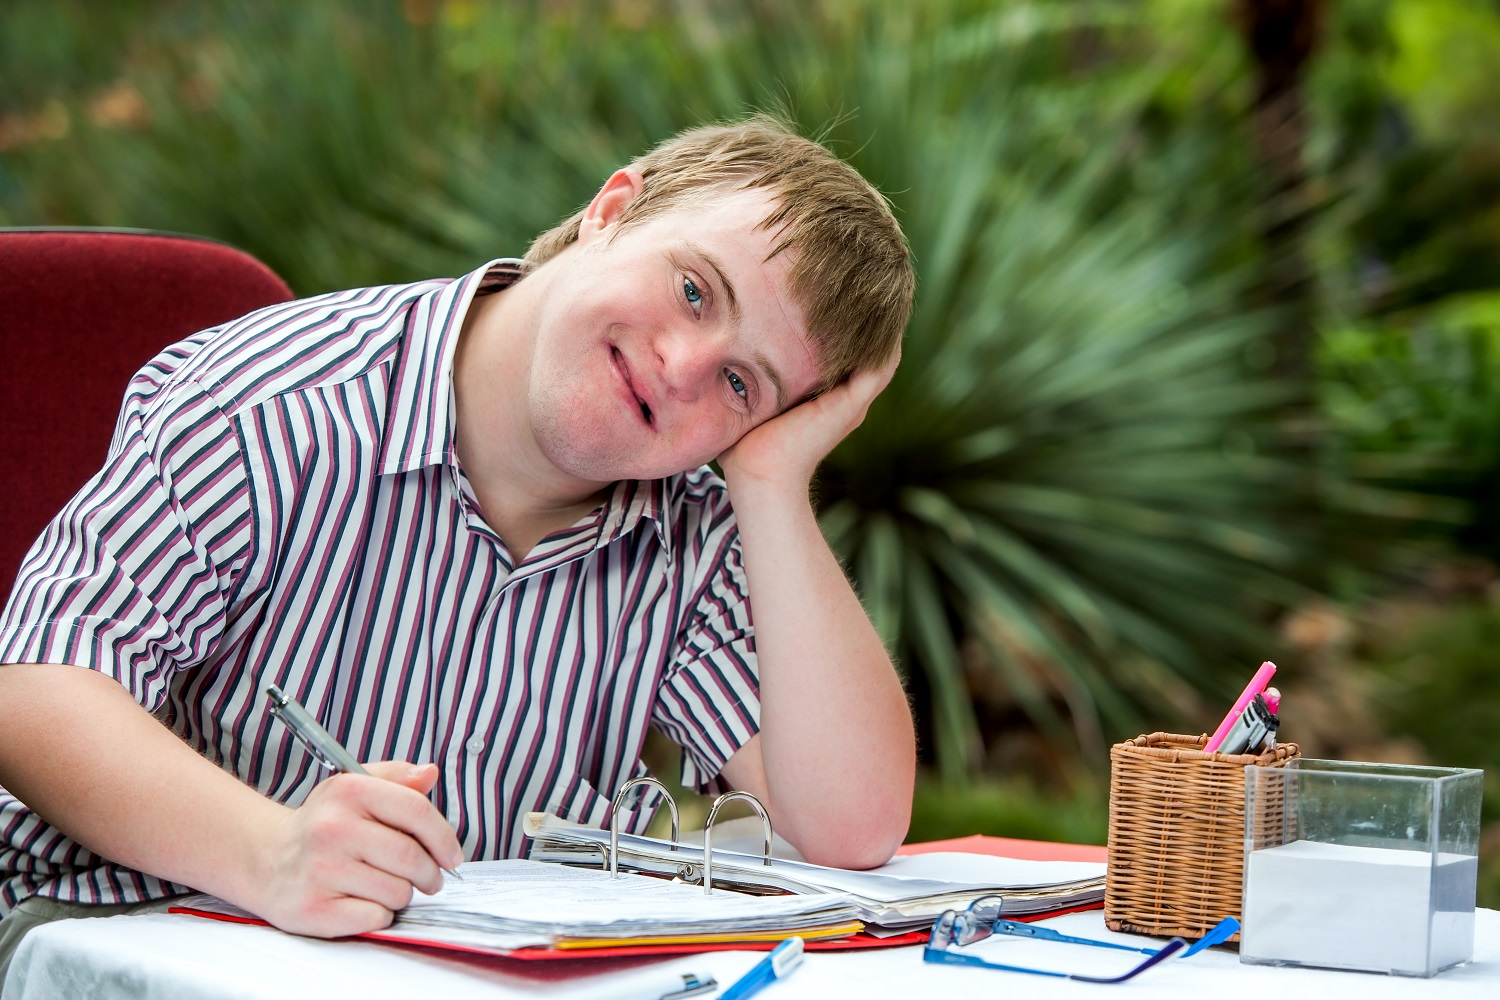 Image of a boy with special needs writing